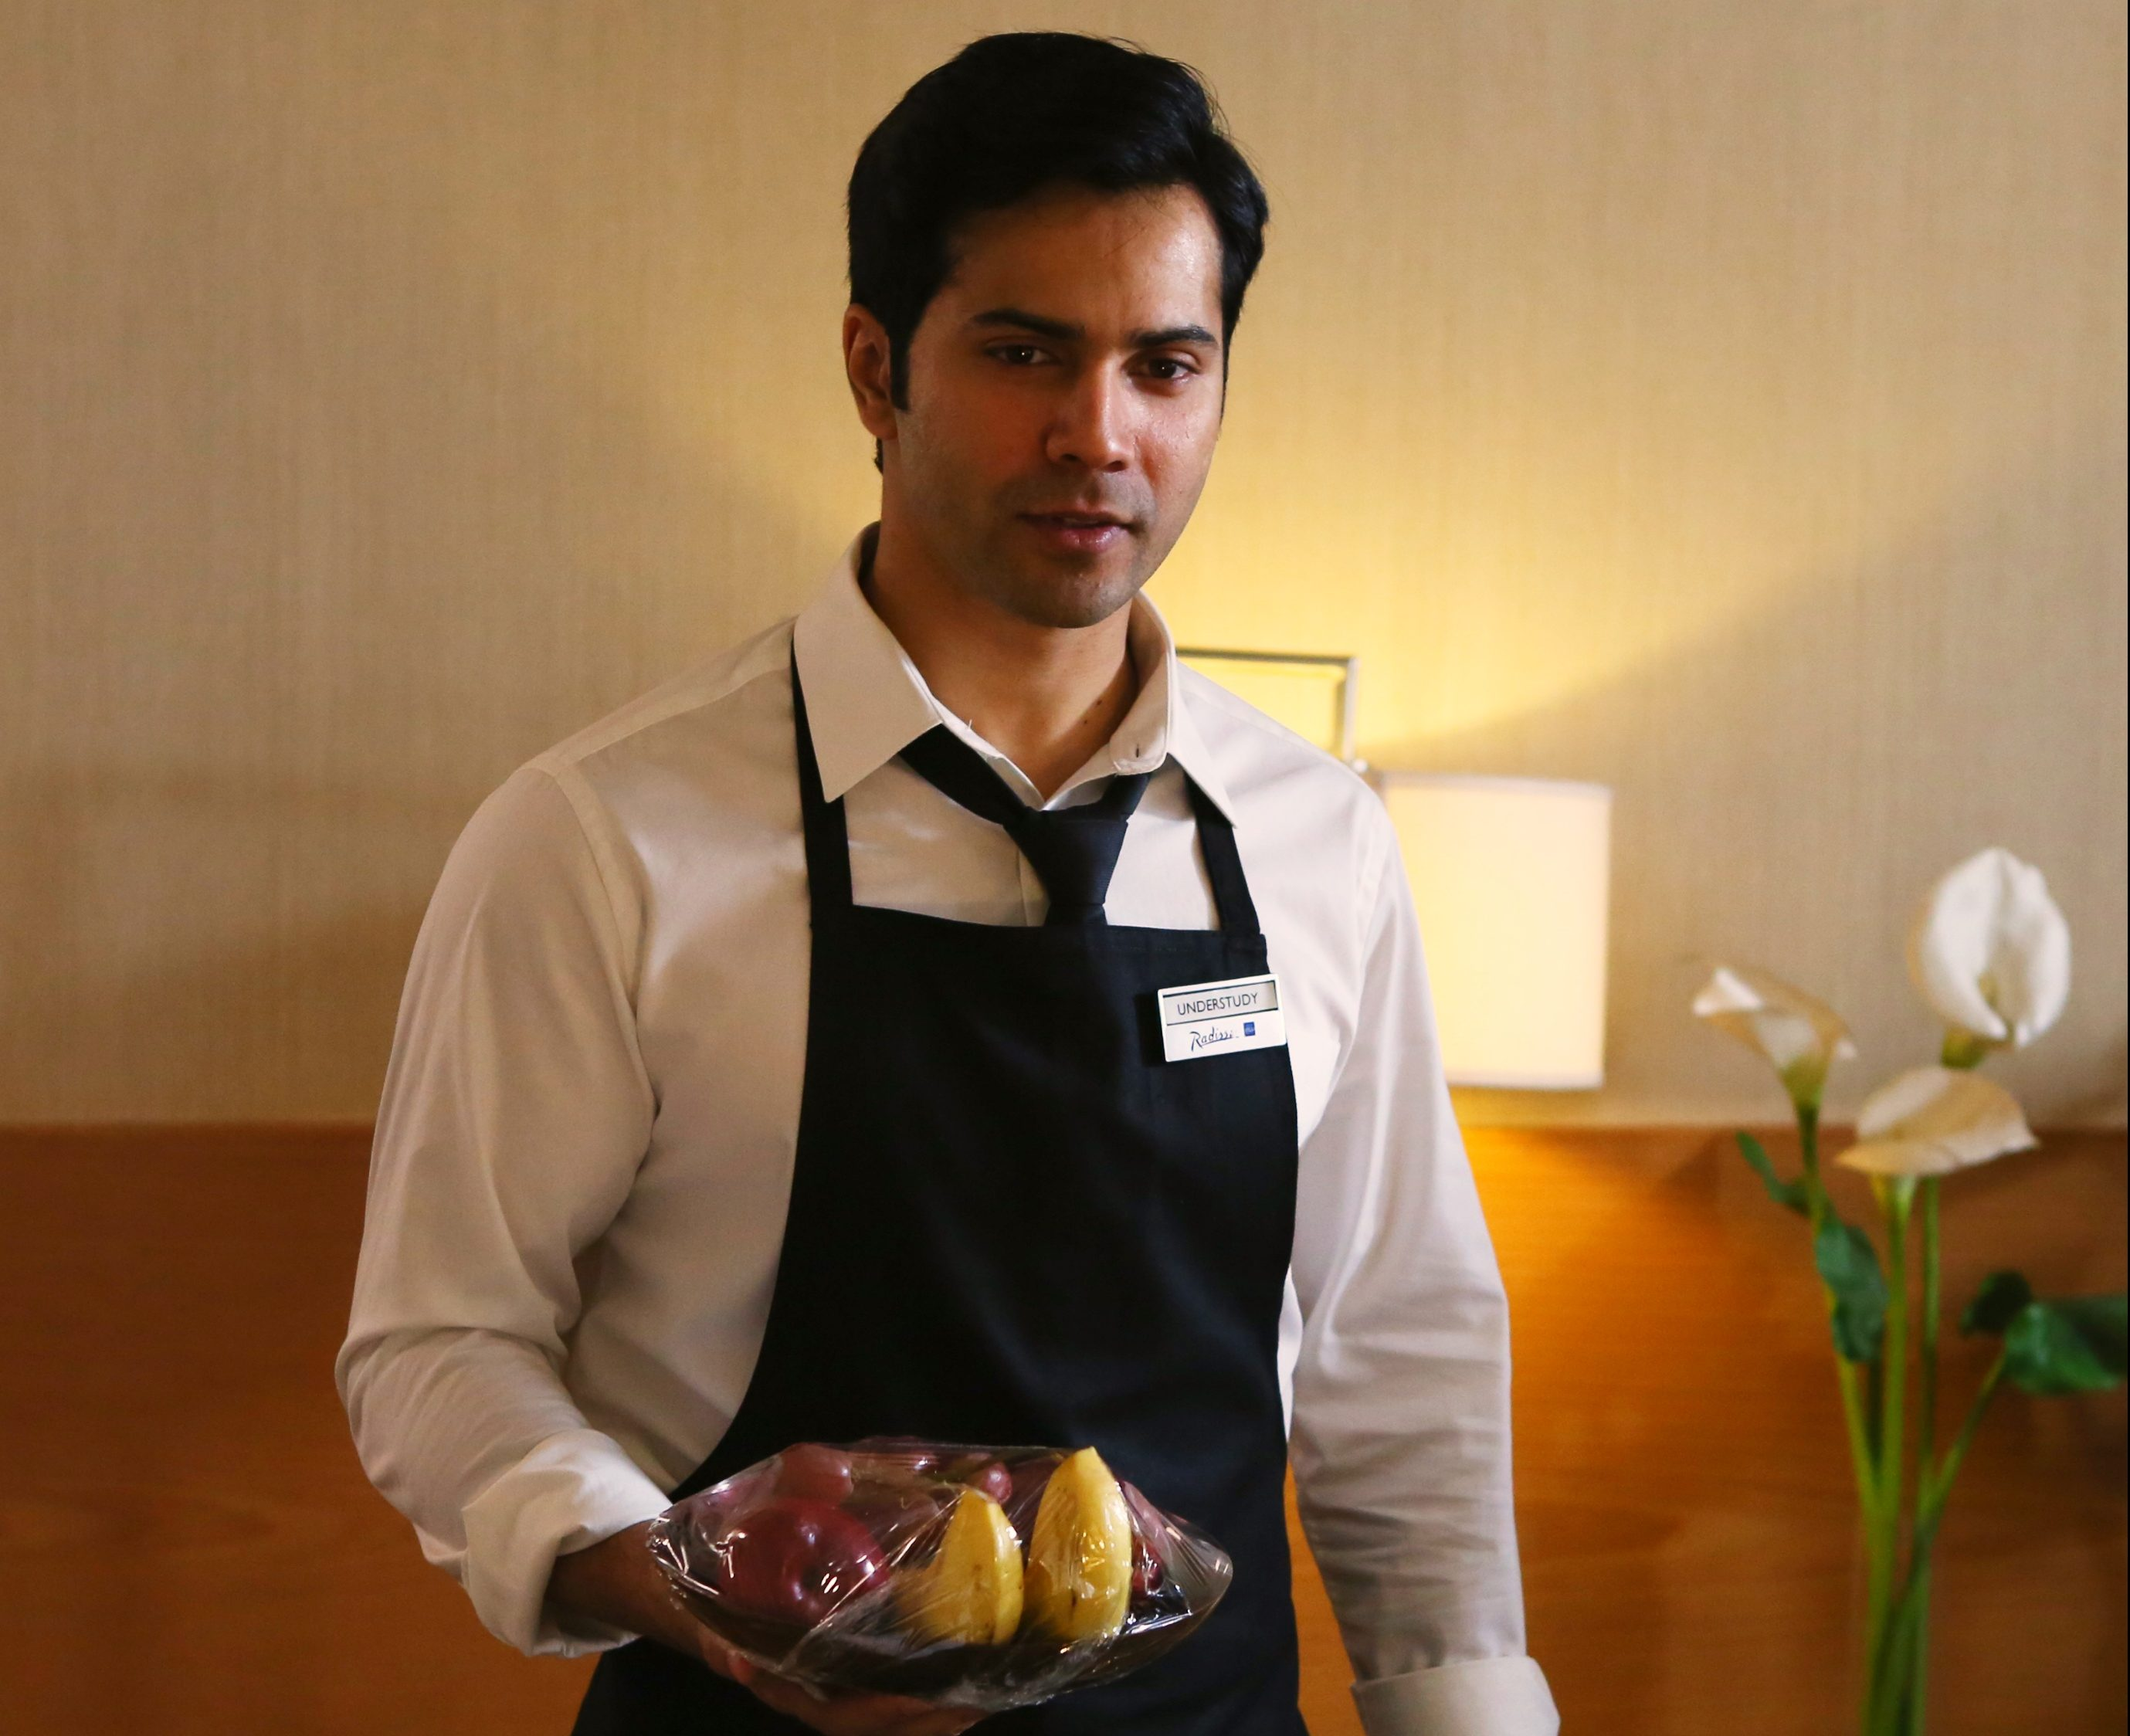 Varun Dhawan Was Mistaken For A Hotel Employee By A Tourist